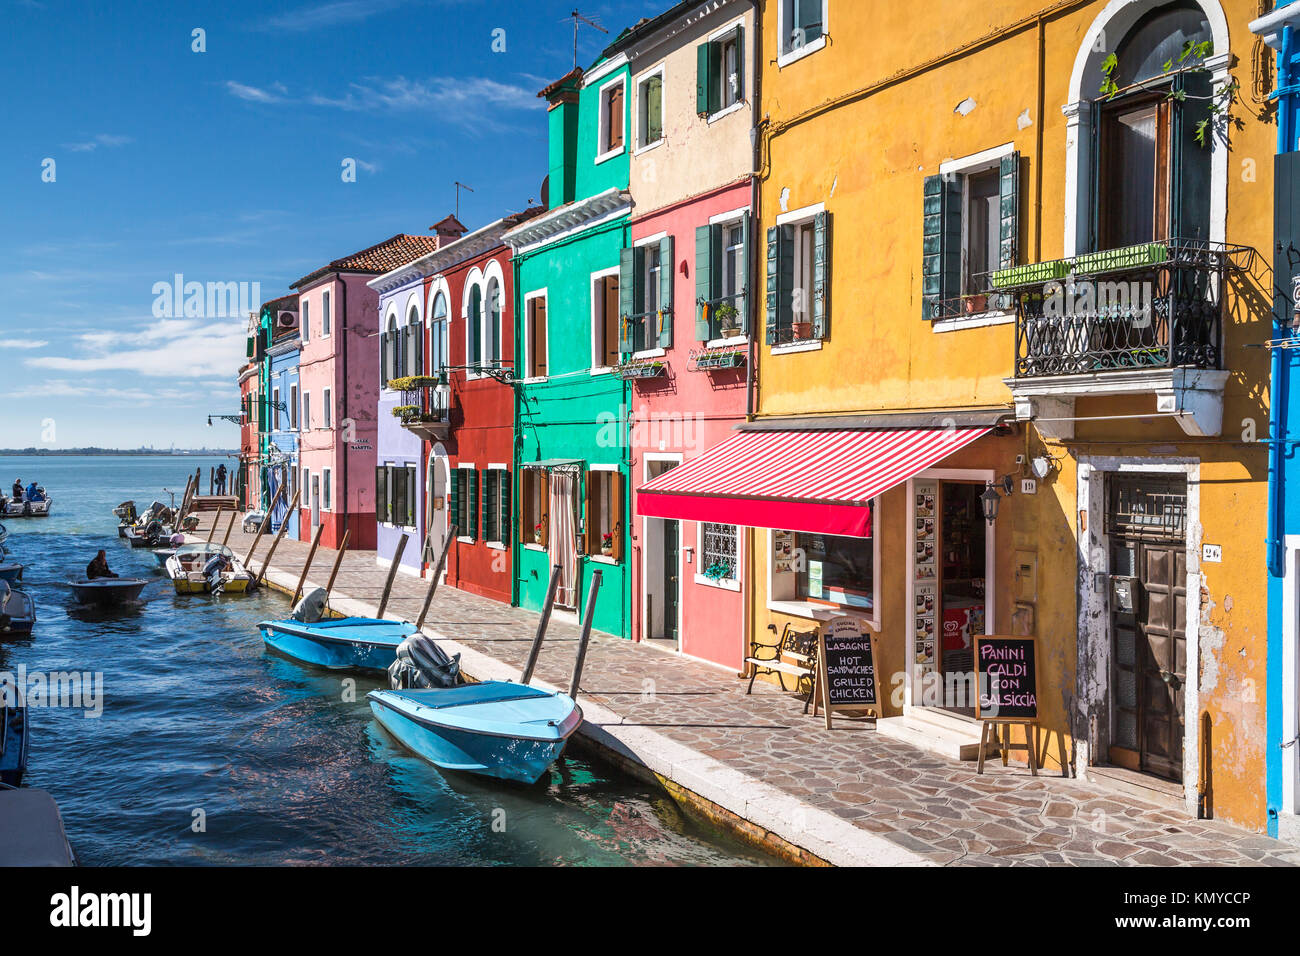 The colorful buldings, canals and boats in the Venetian vlllage of Burano, Venice, Italy, Europe. - Stock Image